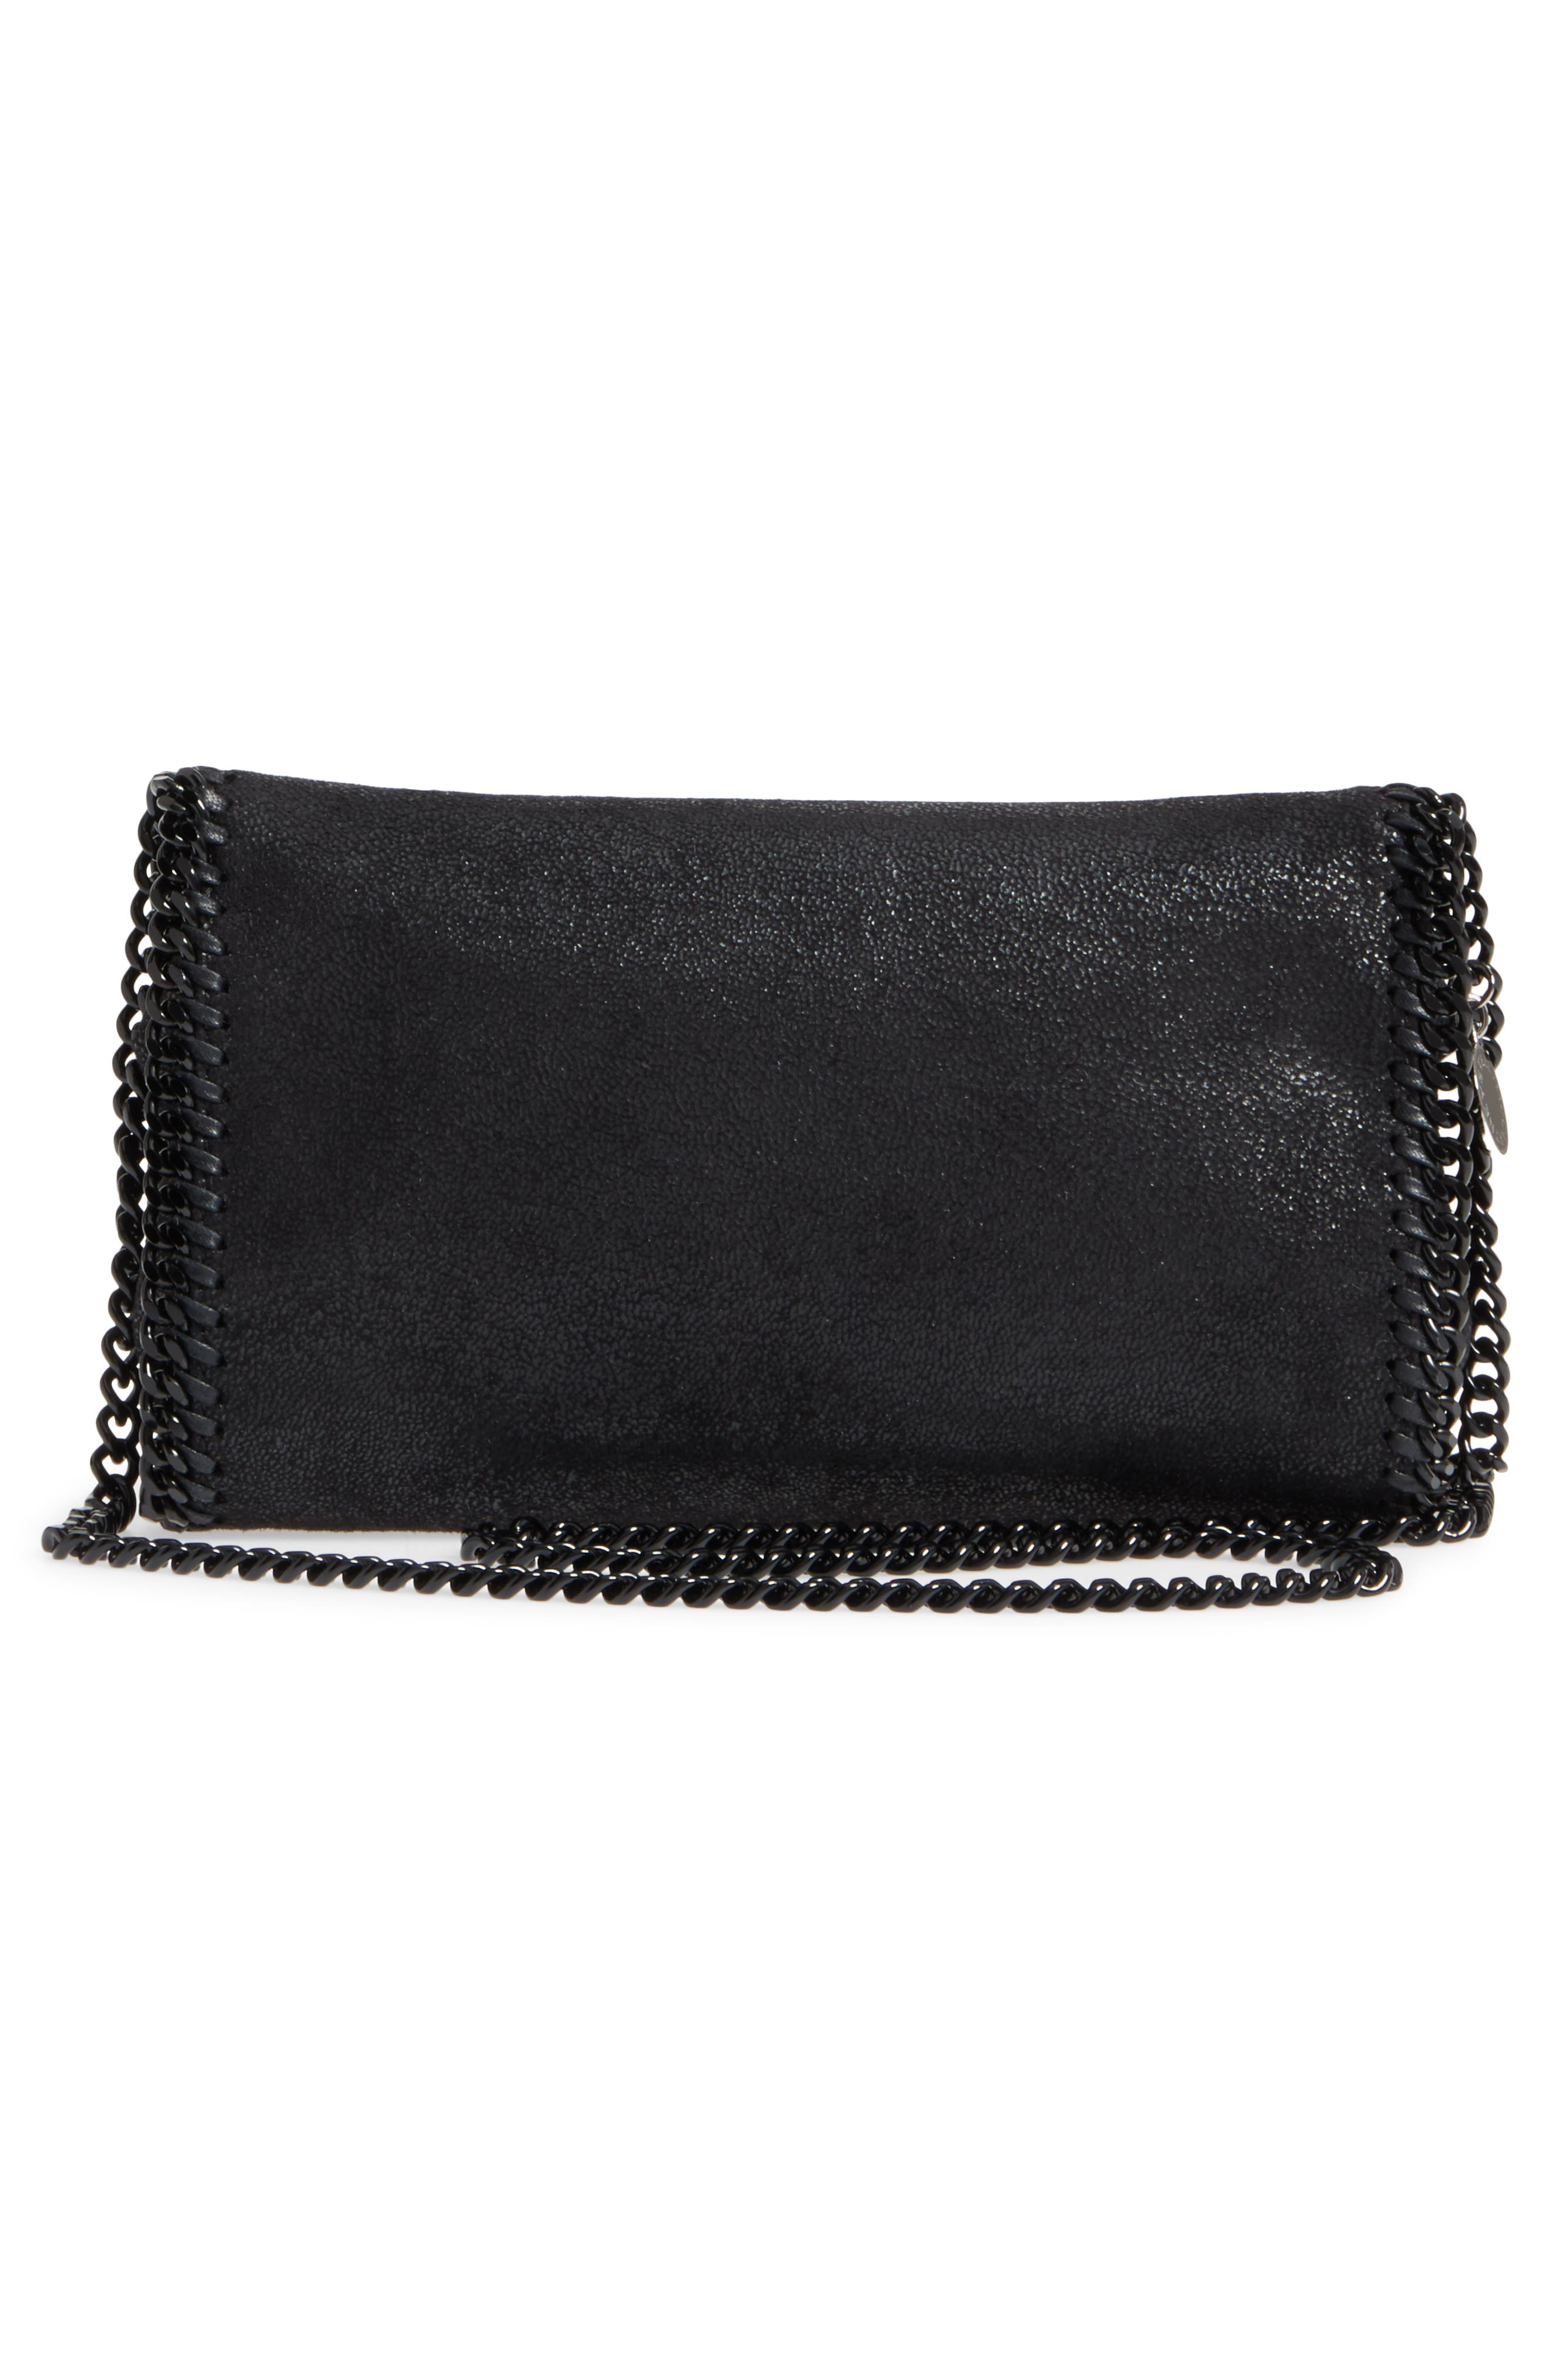 Alternate Image 3  - Stella McCartney Falabella Shaggy Deer Faux Leather Clutch